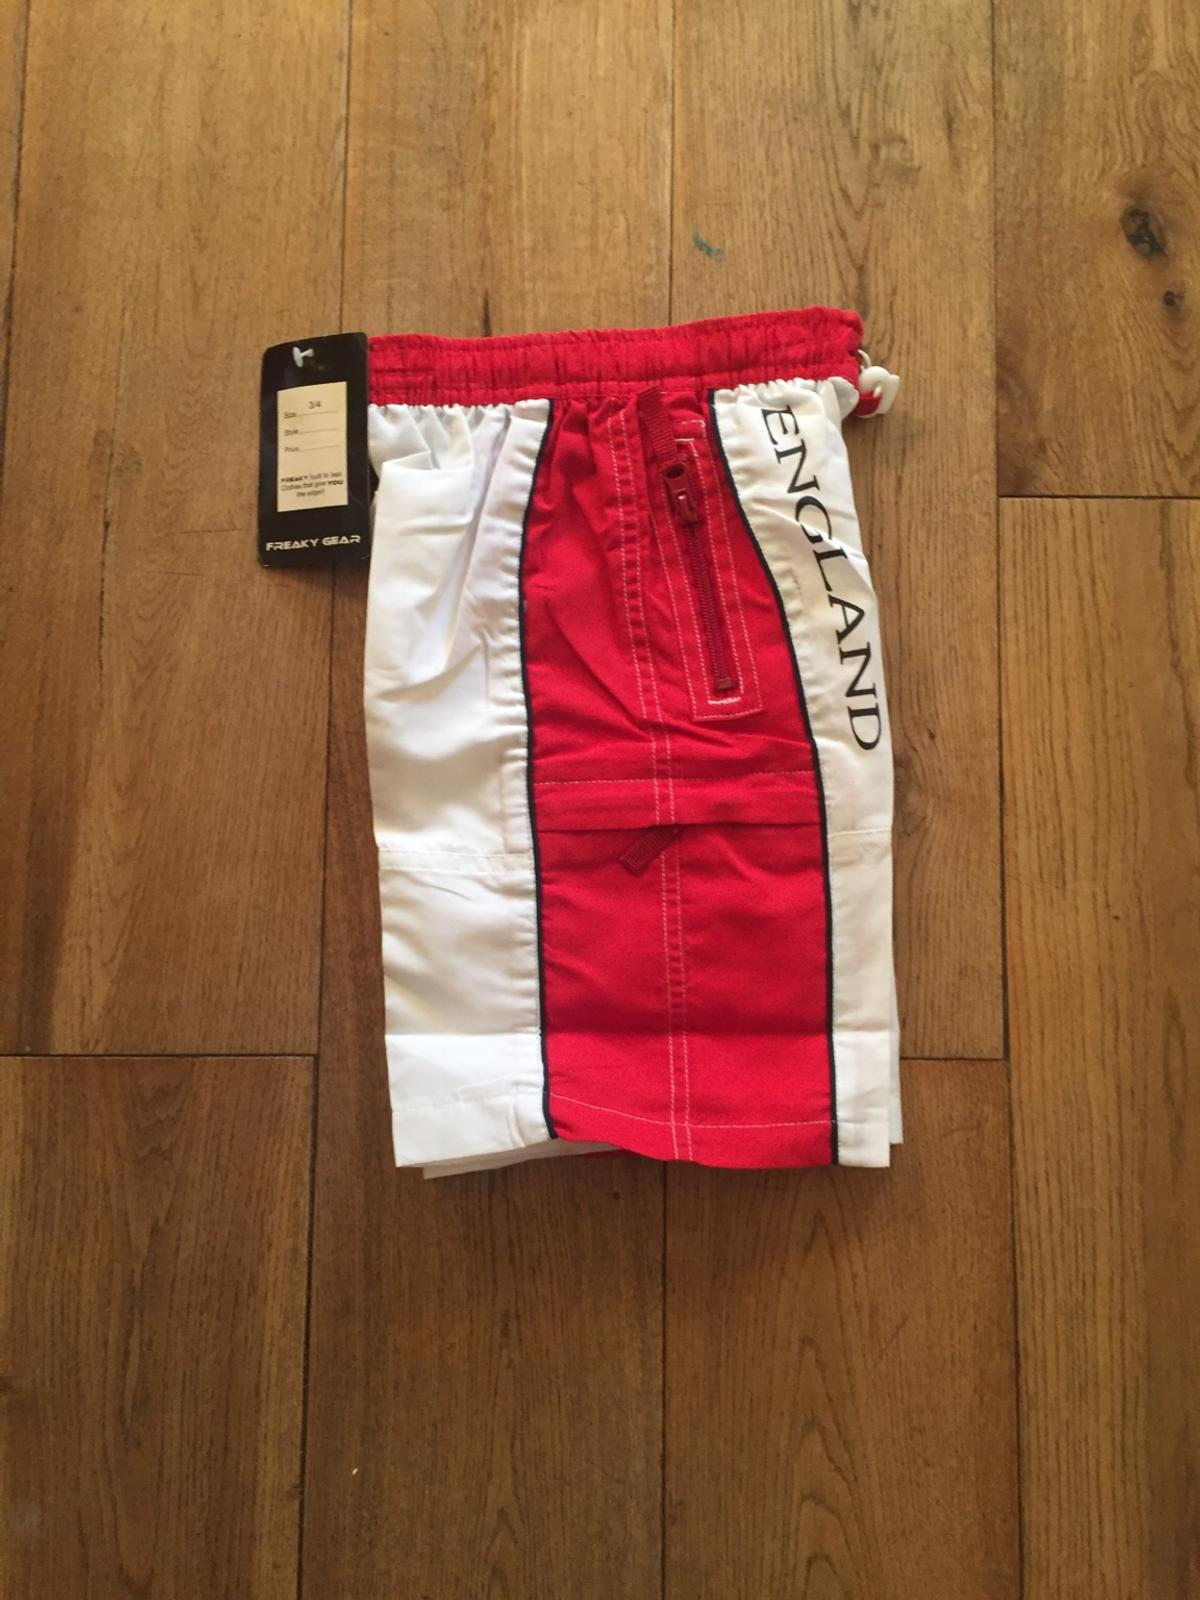 0ea2a8aaf17b7 Boys Shorts in WV14 Wolverhampton for £1.00 for sale - Shpock